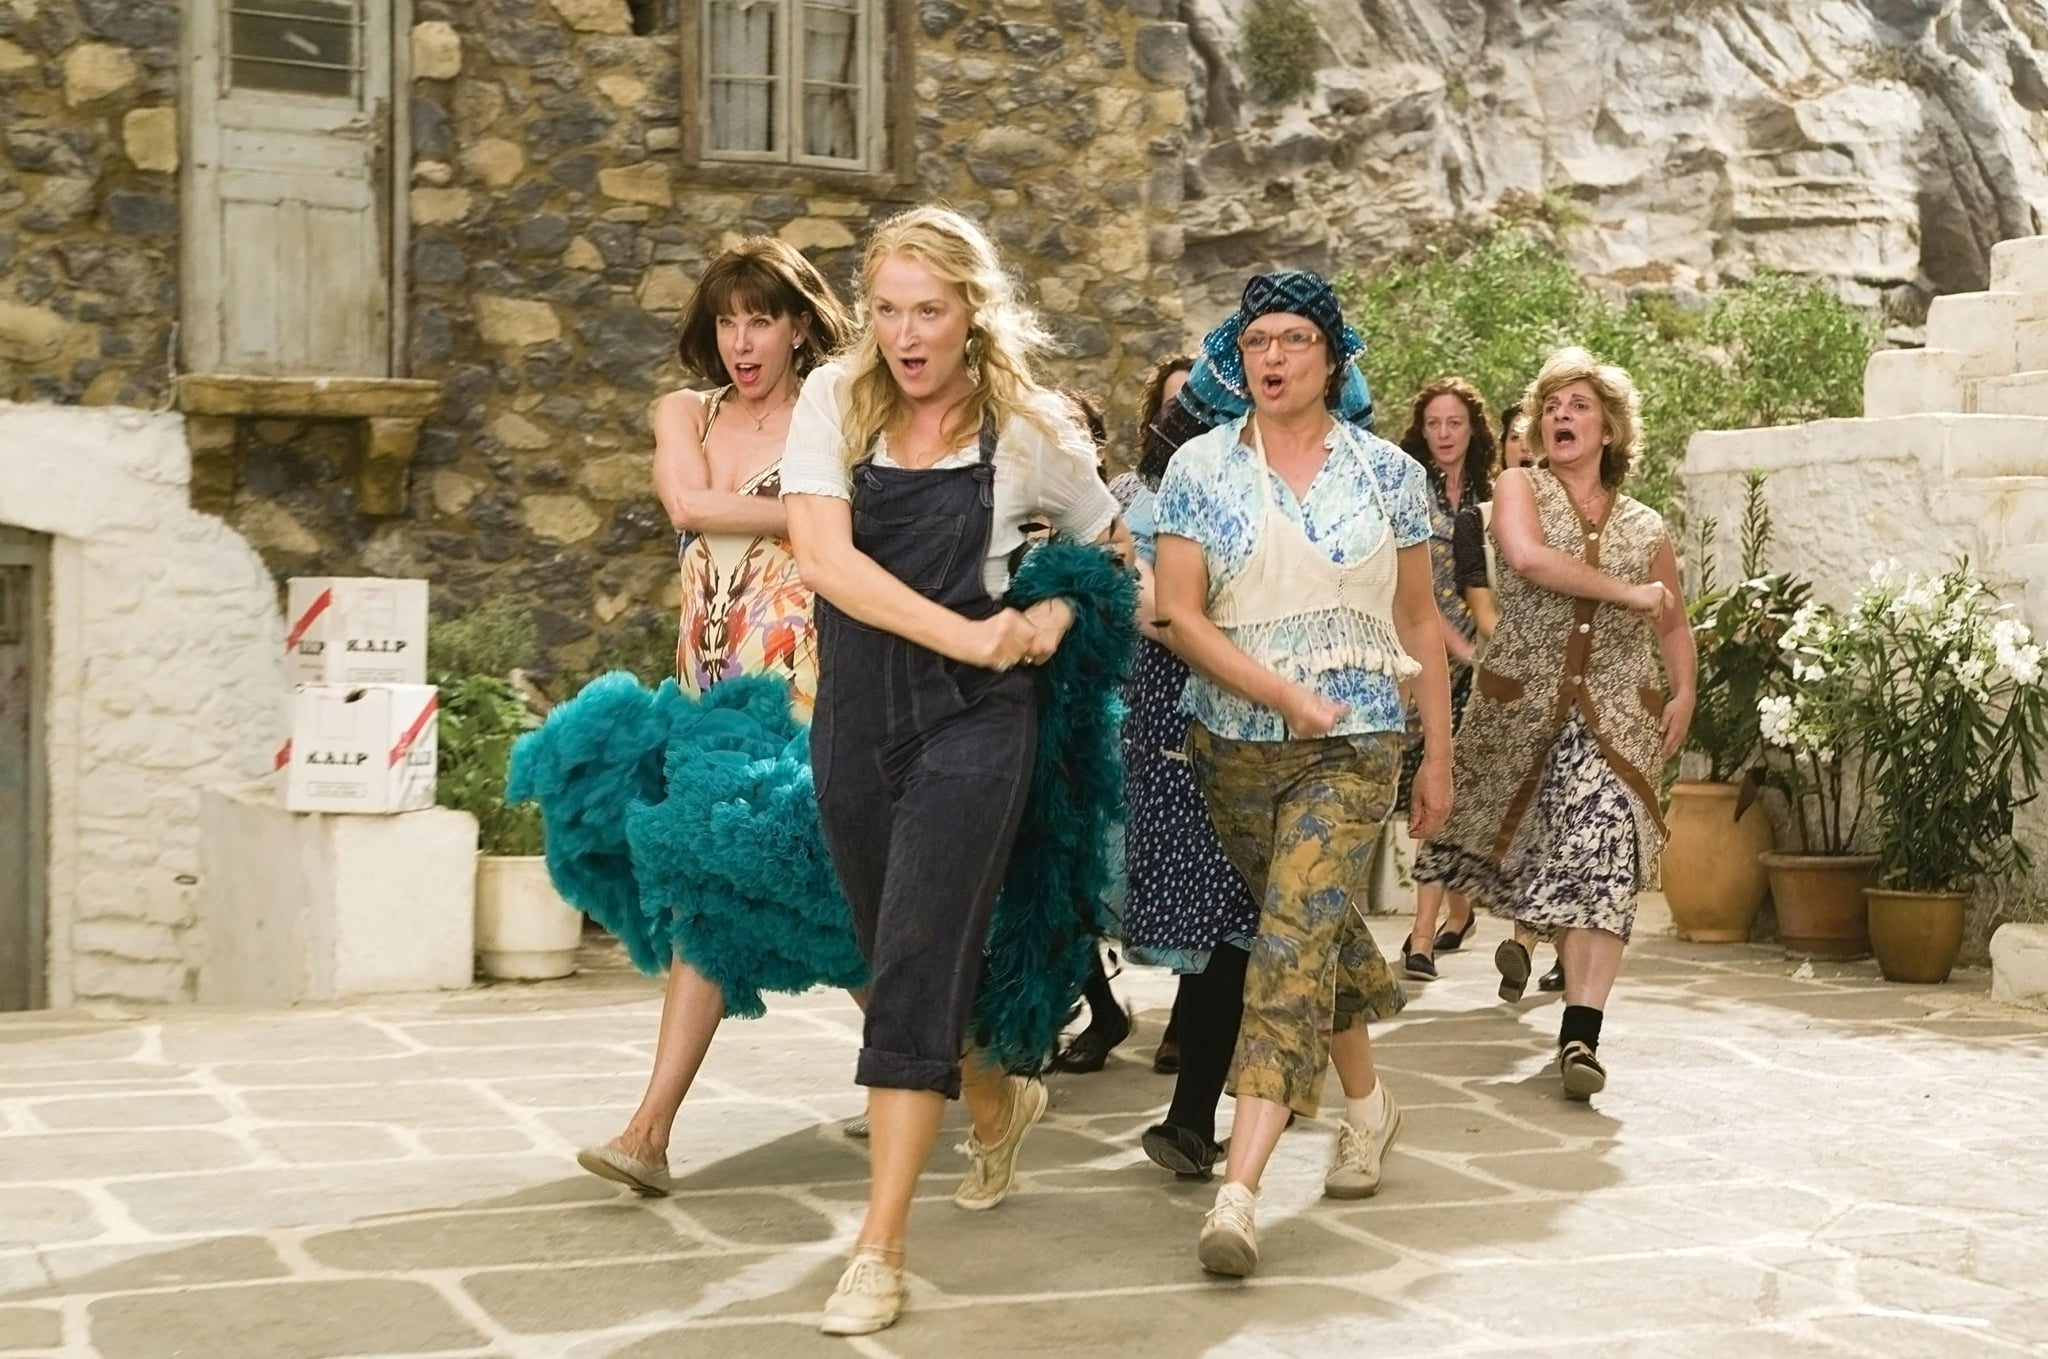 MAMMA MIA!, foreground from left: Christine Baranski, Meryl Streep, Julie Walters, 2008. Universal/courtesy Everett Collection